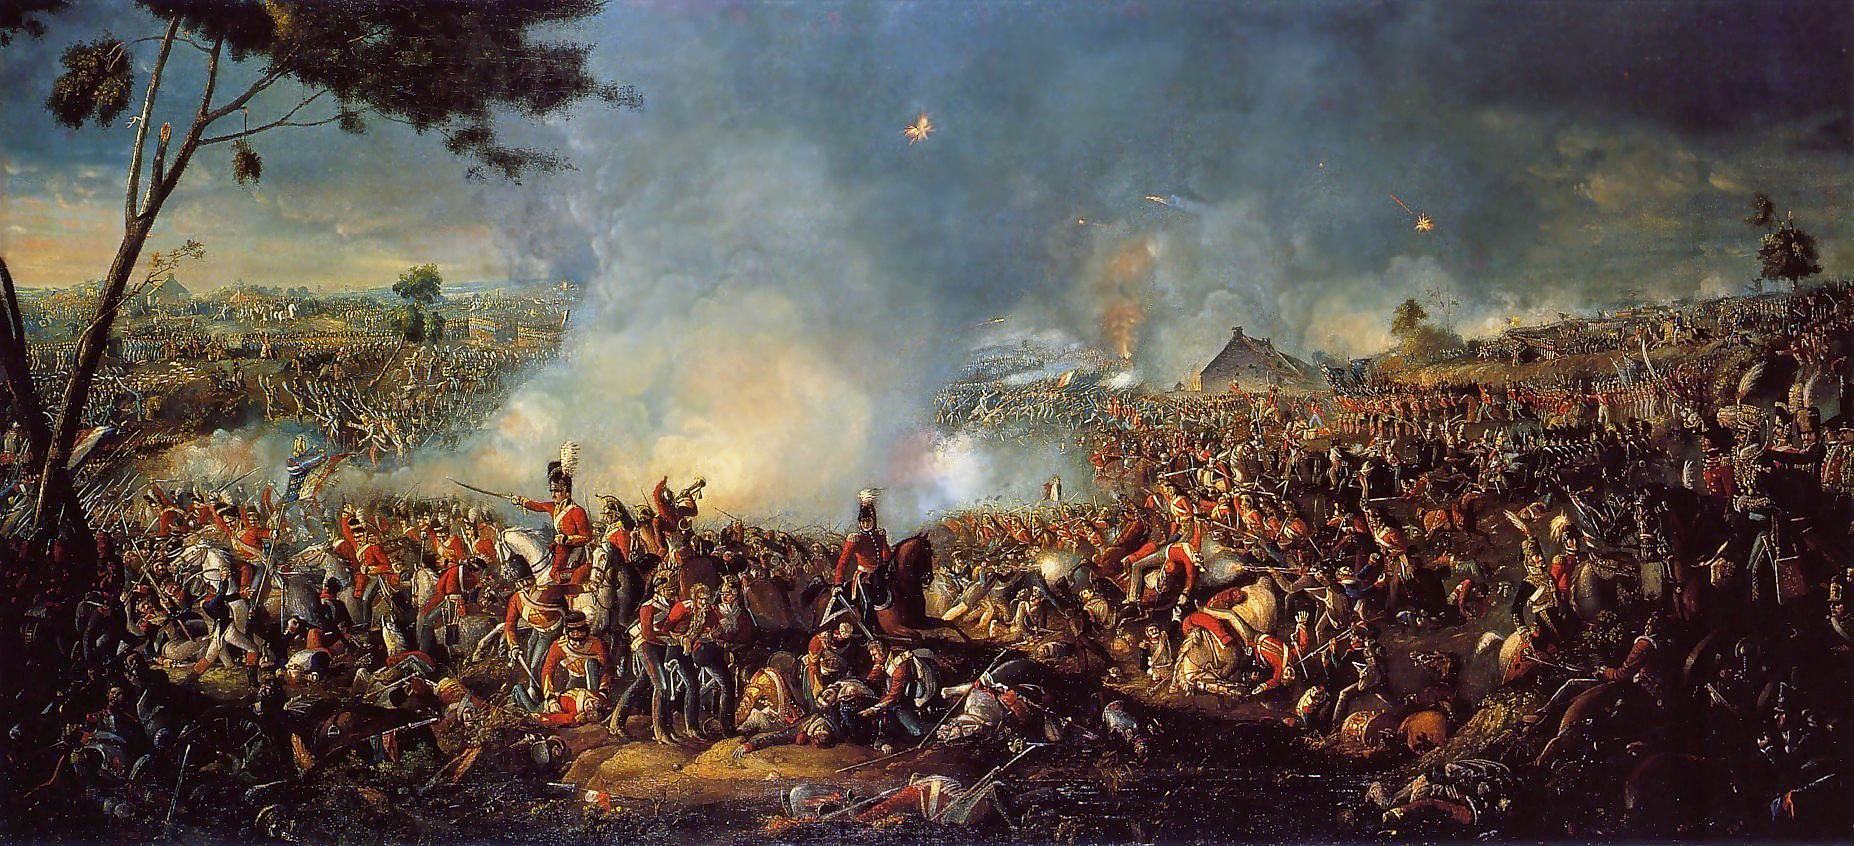 https://i2.wp.com/upload.wikimedia.org/wikipedia/commons/7/72/Battle_of_Waterloo_1815.PNG